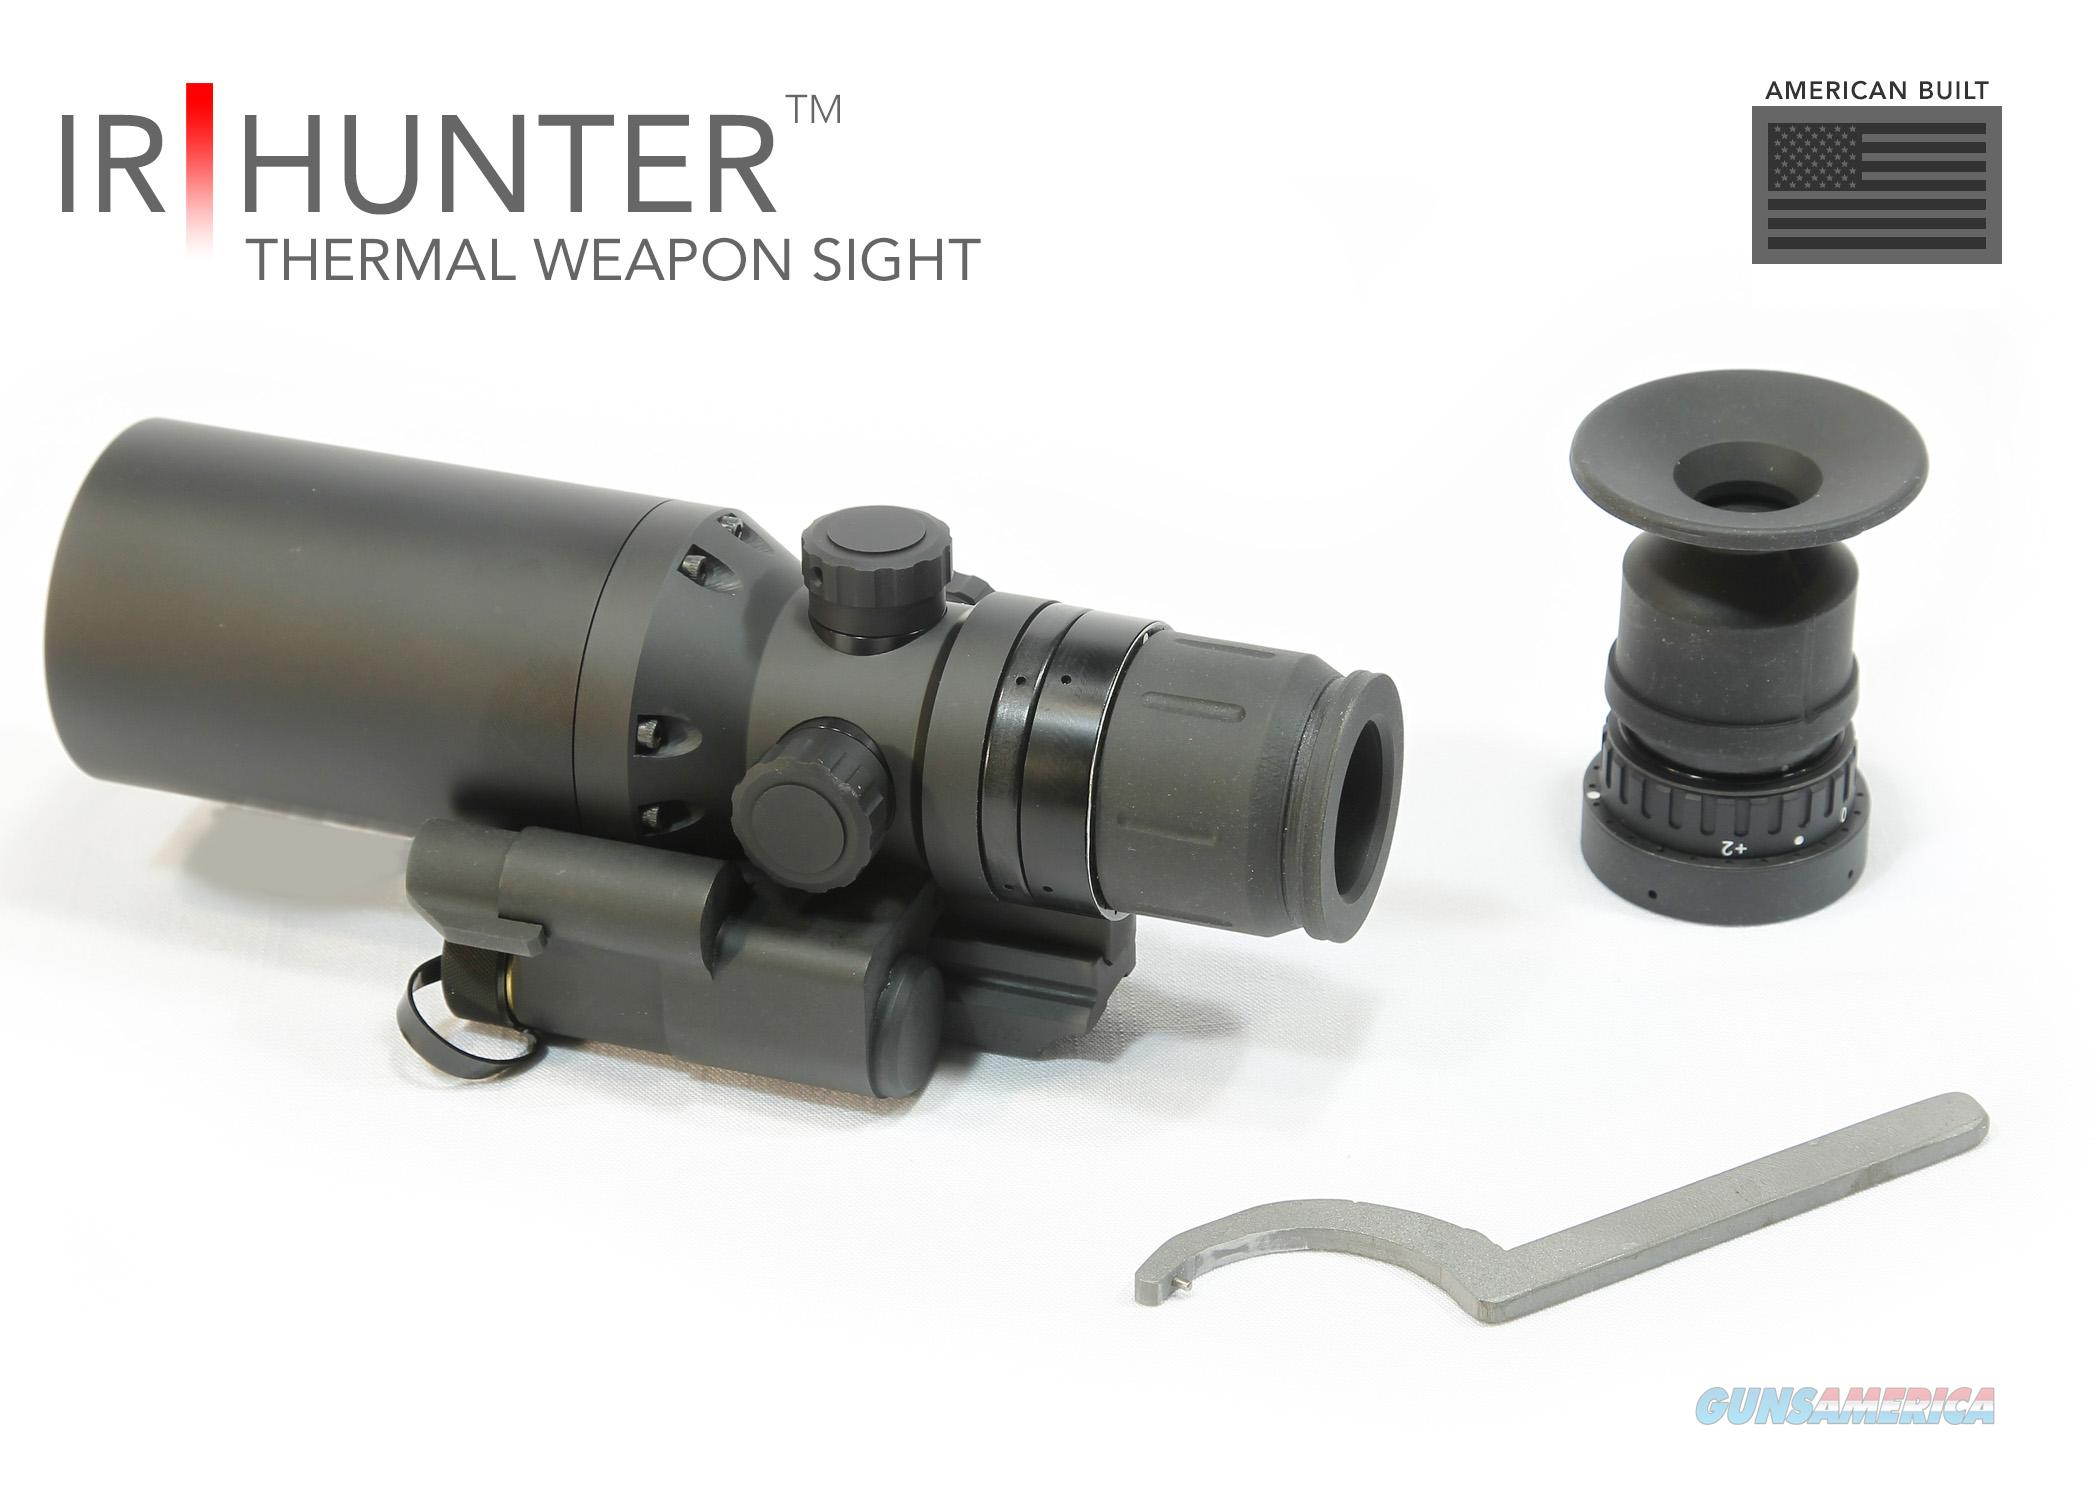 IR Defense Systems IR Hunter Mark II 640x480 Thermal Weapon Sight IRHM2-640-35 out performs ATN Thor Thor336 ARMASIGHT FLIR  Non-Guns > Night Vision